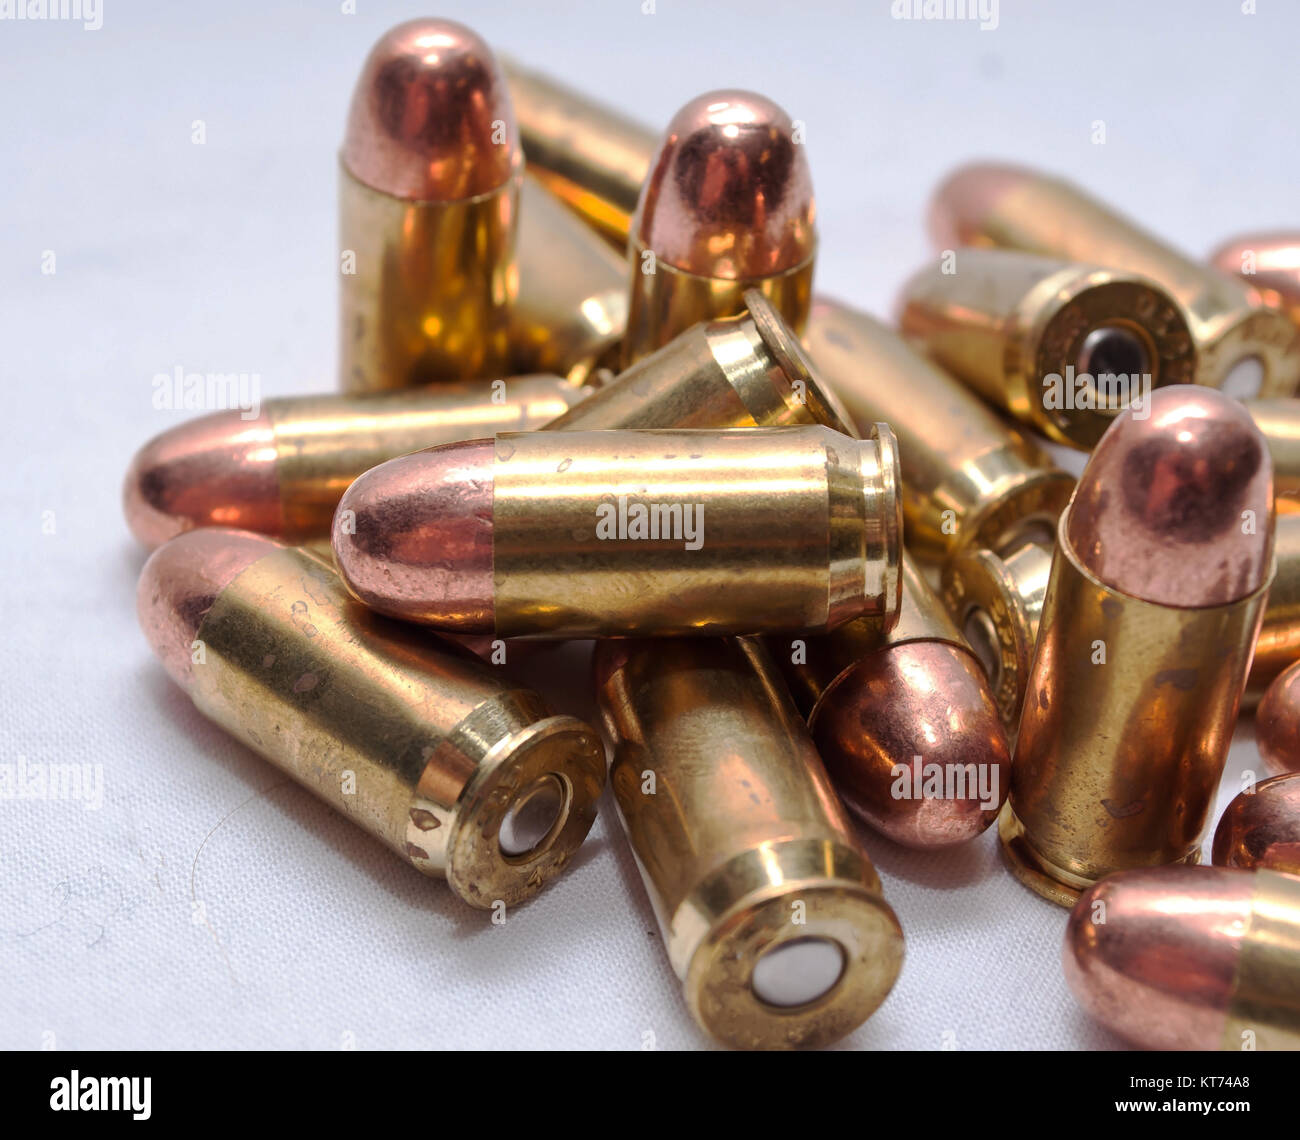 A pile of .45 caliber bullets on a white background - Stock Image